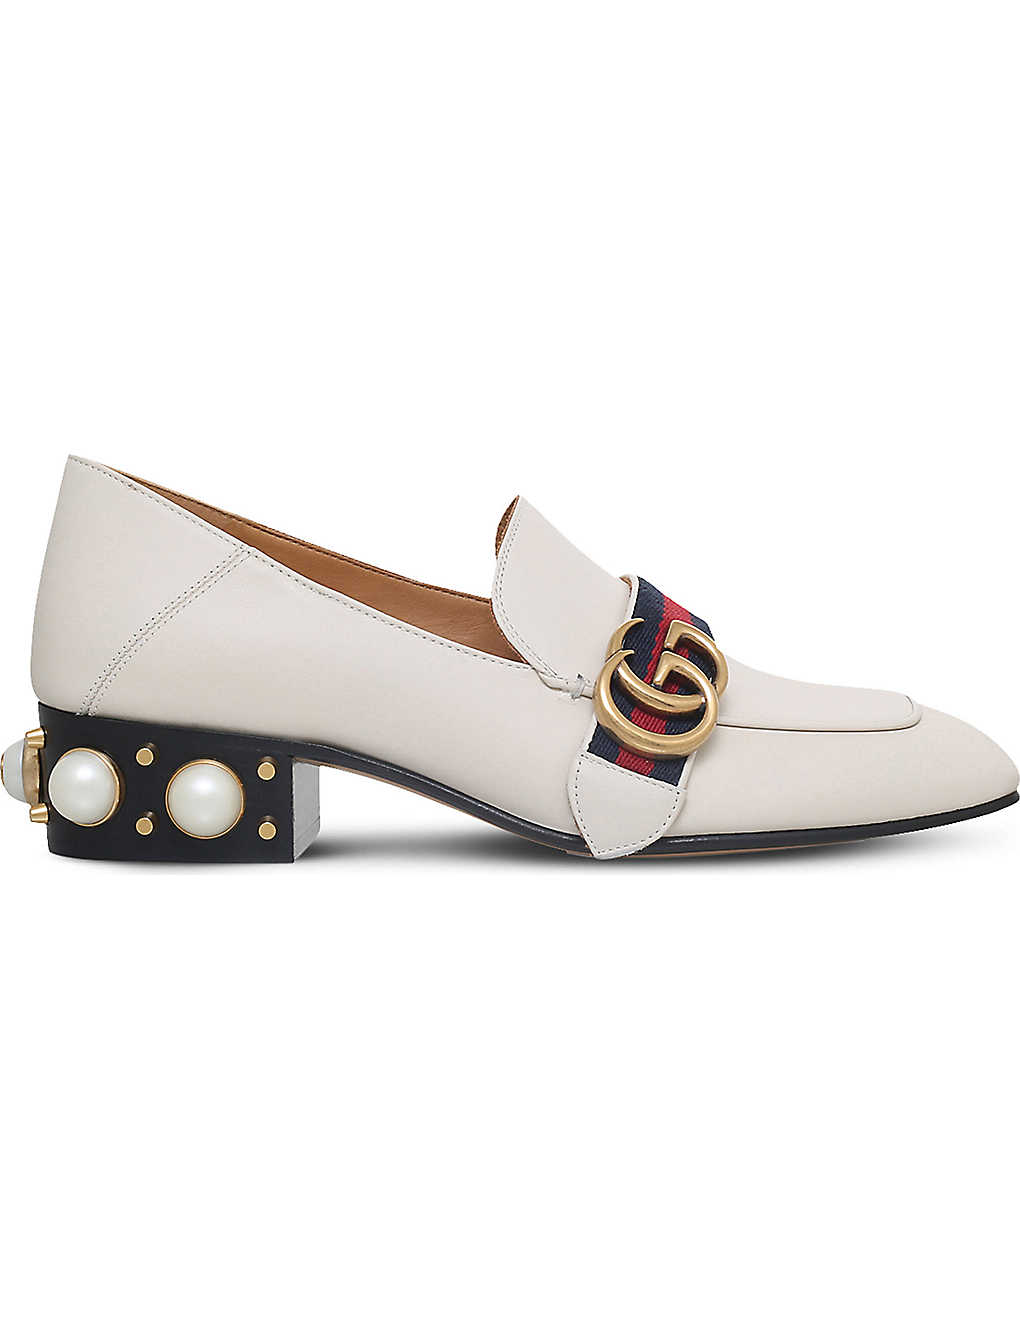 8c5db2791 GUCCI - Peyton Pearl leather loafers | Selfridges.com